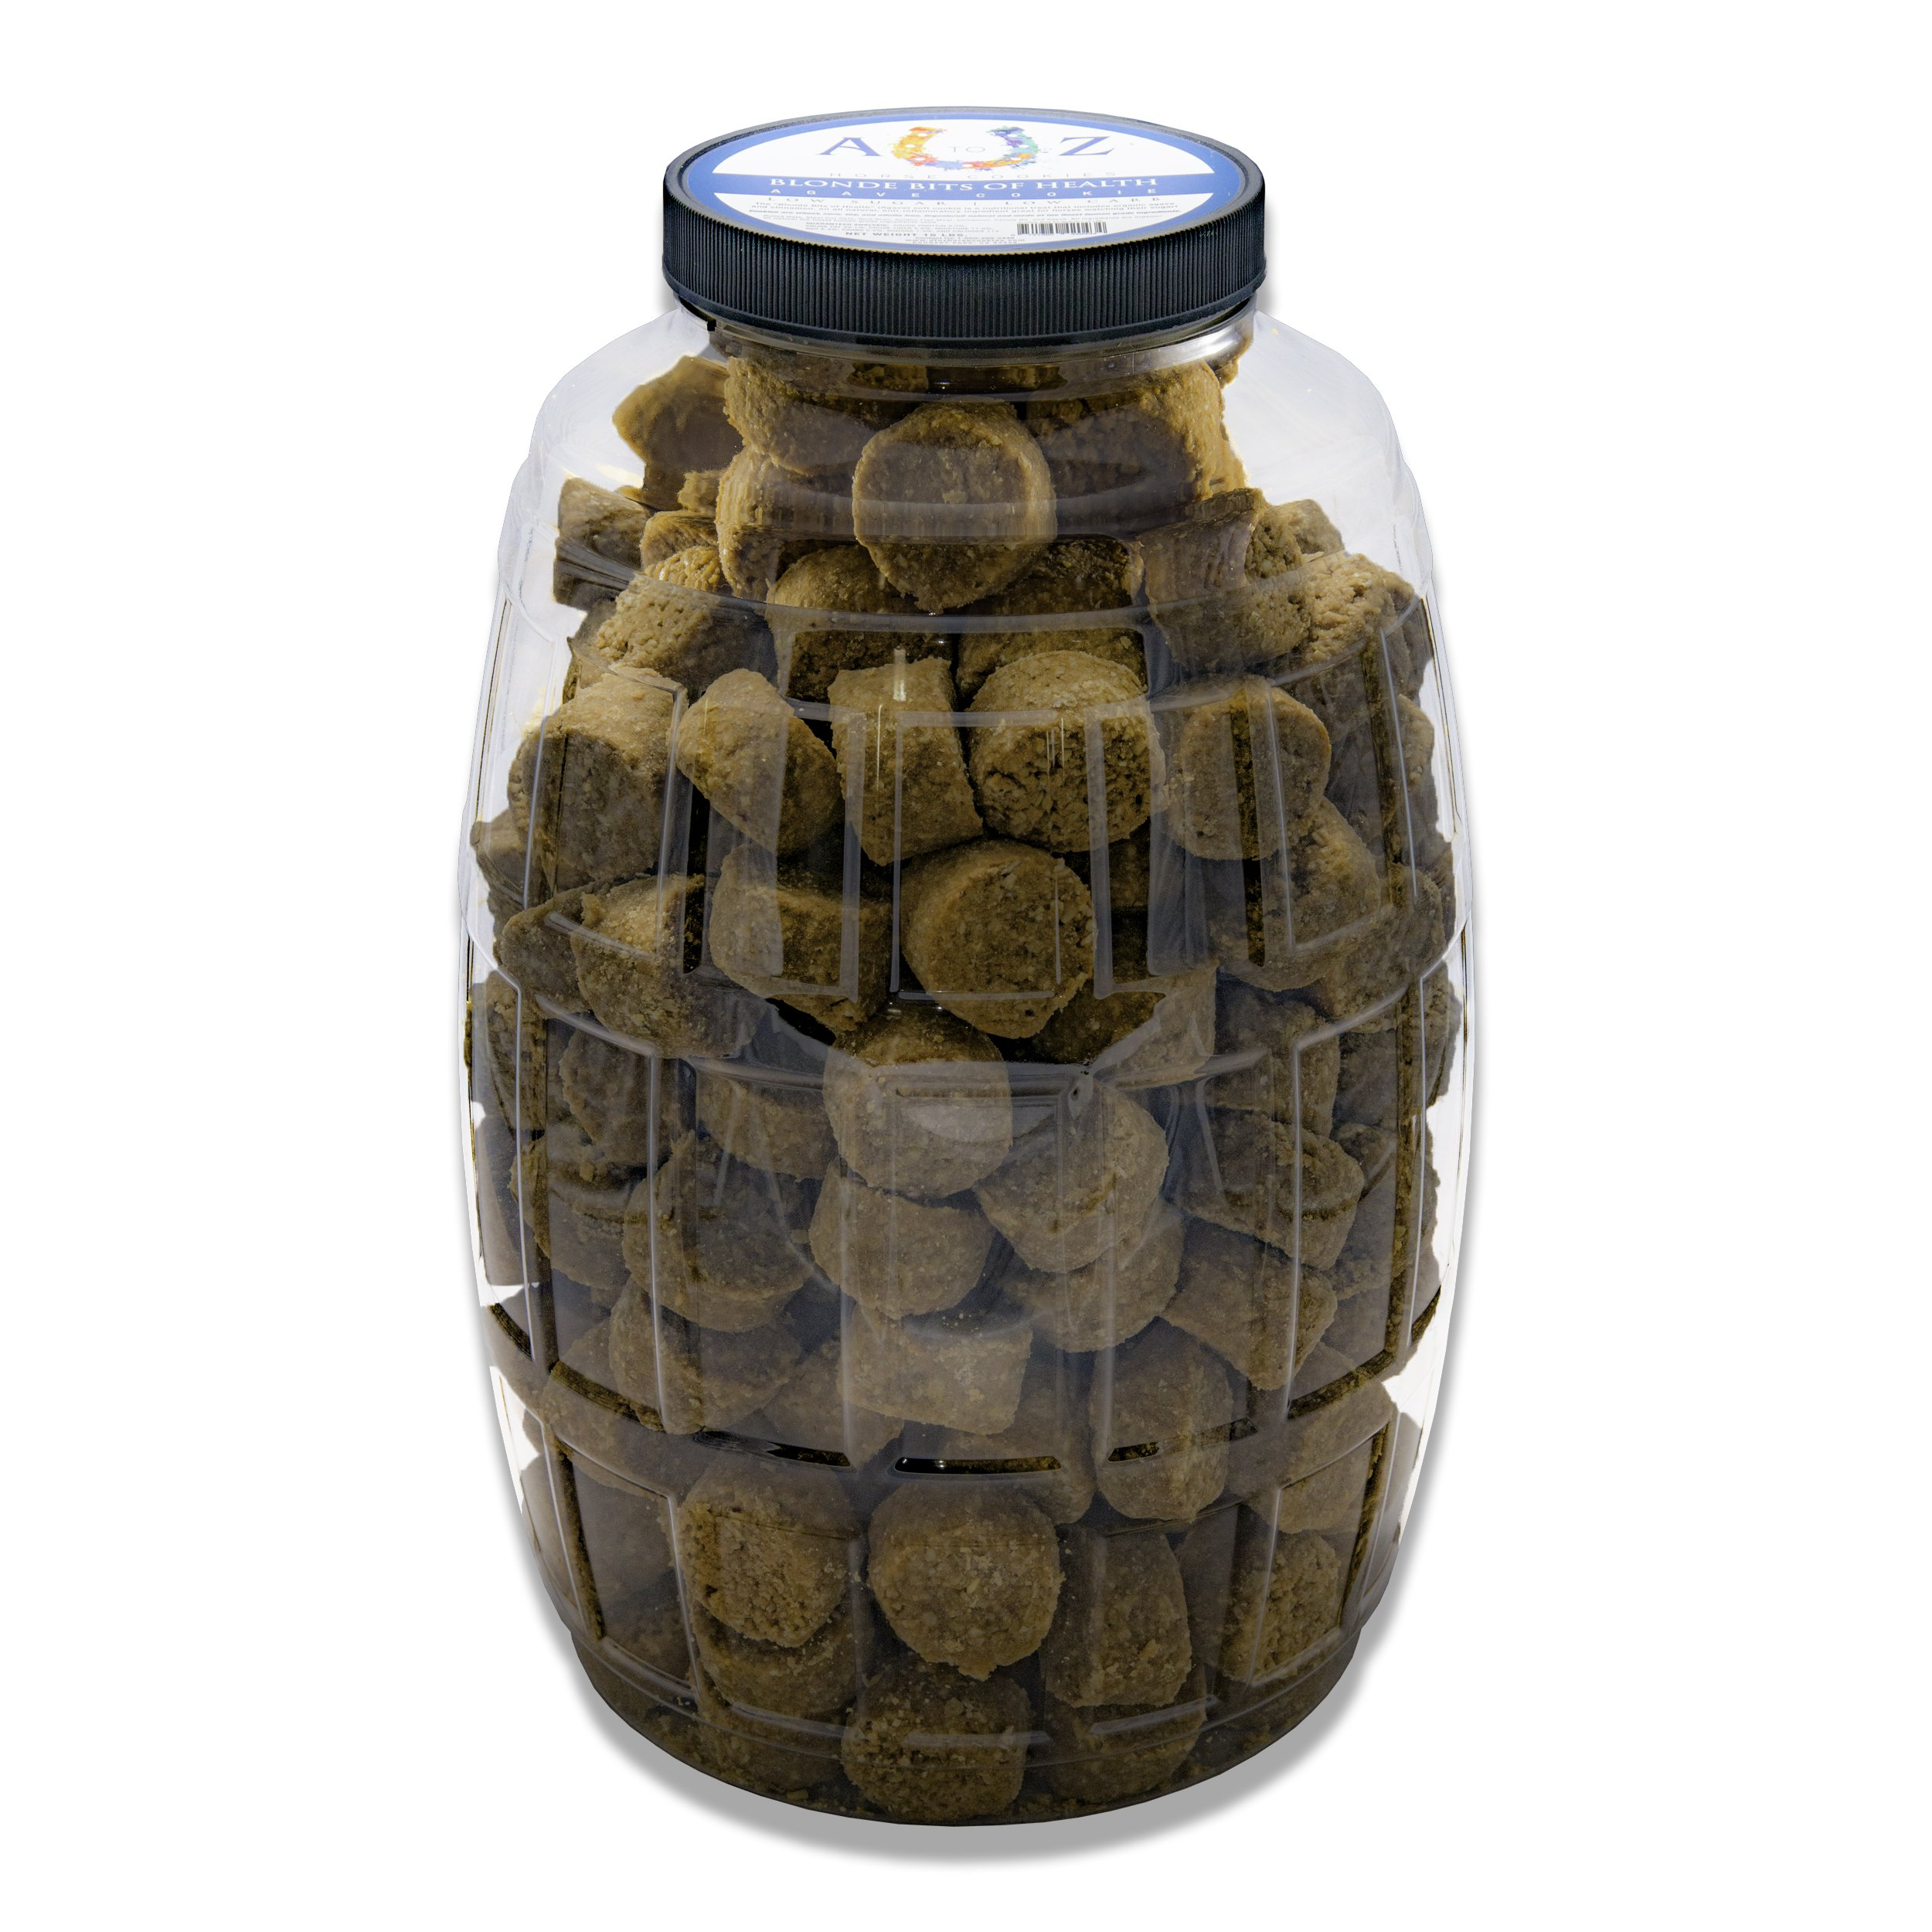 Horse Cookie Treat: Blond Bits Of Health Flavor by A - Z Horse Cookies, Low Carb Low Sugar Softer Treats, Organic, Great For All Horses And Excellent For Those With Metabolic Conditions, 15 lbs Jar